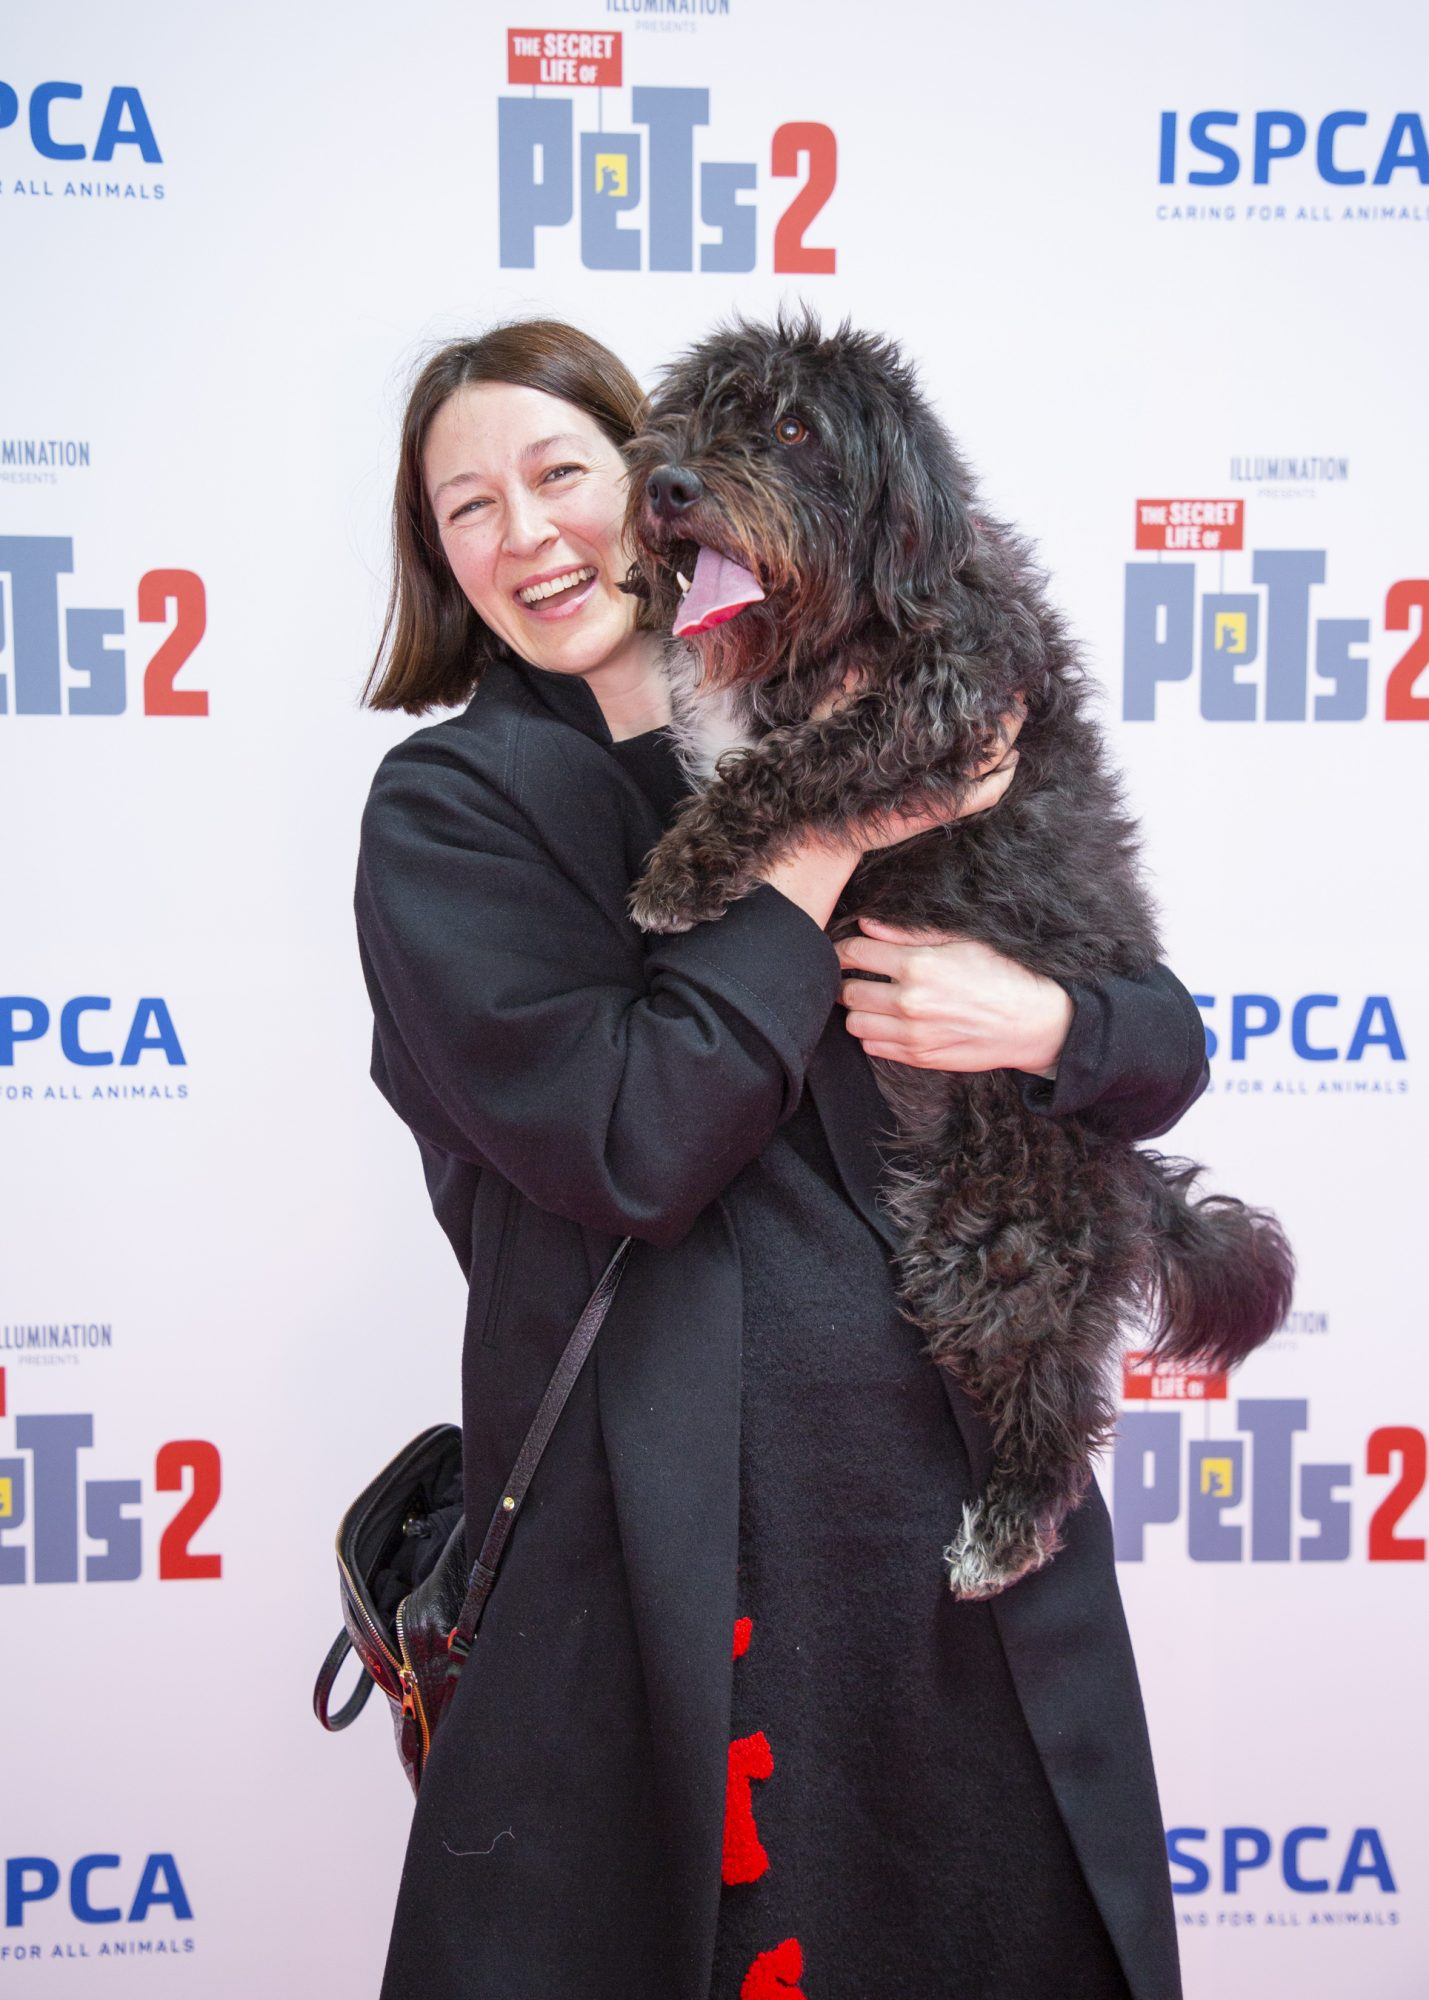 Natalie B Coleman & Lucky pictured at the Irish premiere screening of The Secret Life of Pets 2 at Odeon Point Square, Dublin hosted by Universal Pictures in association with the ISPCA. The Secret Life of Pets 2 is in cinemas from Friday May 24th. Photo: Anthony Woods